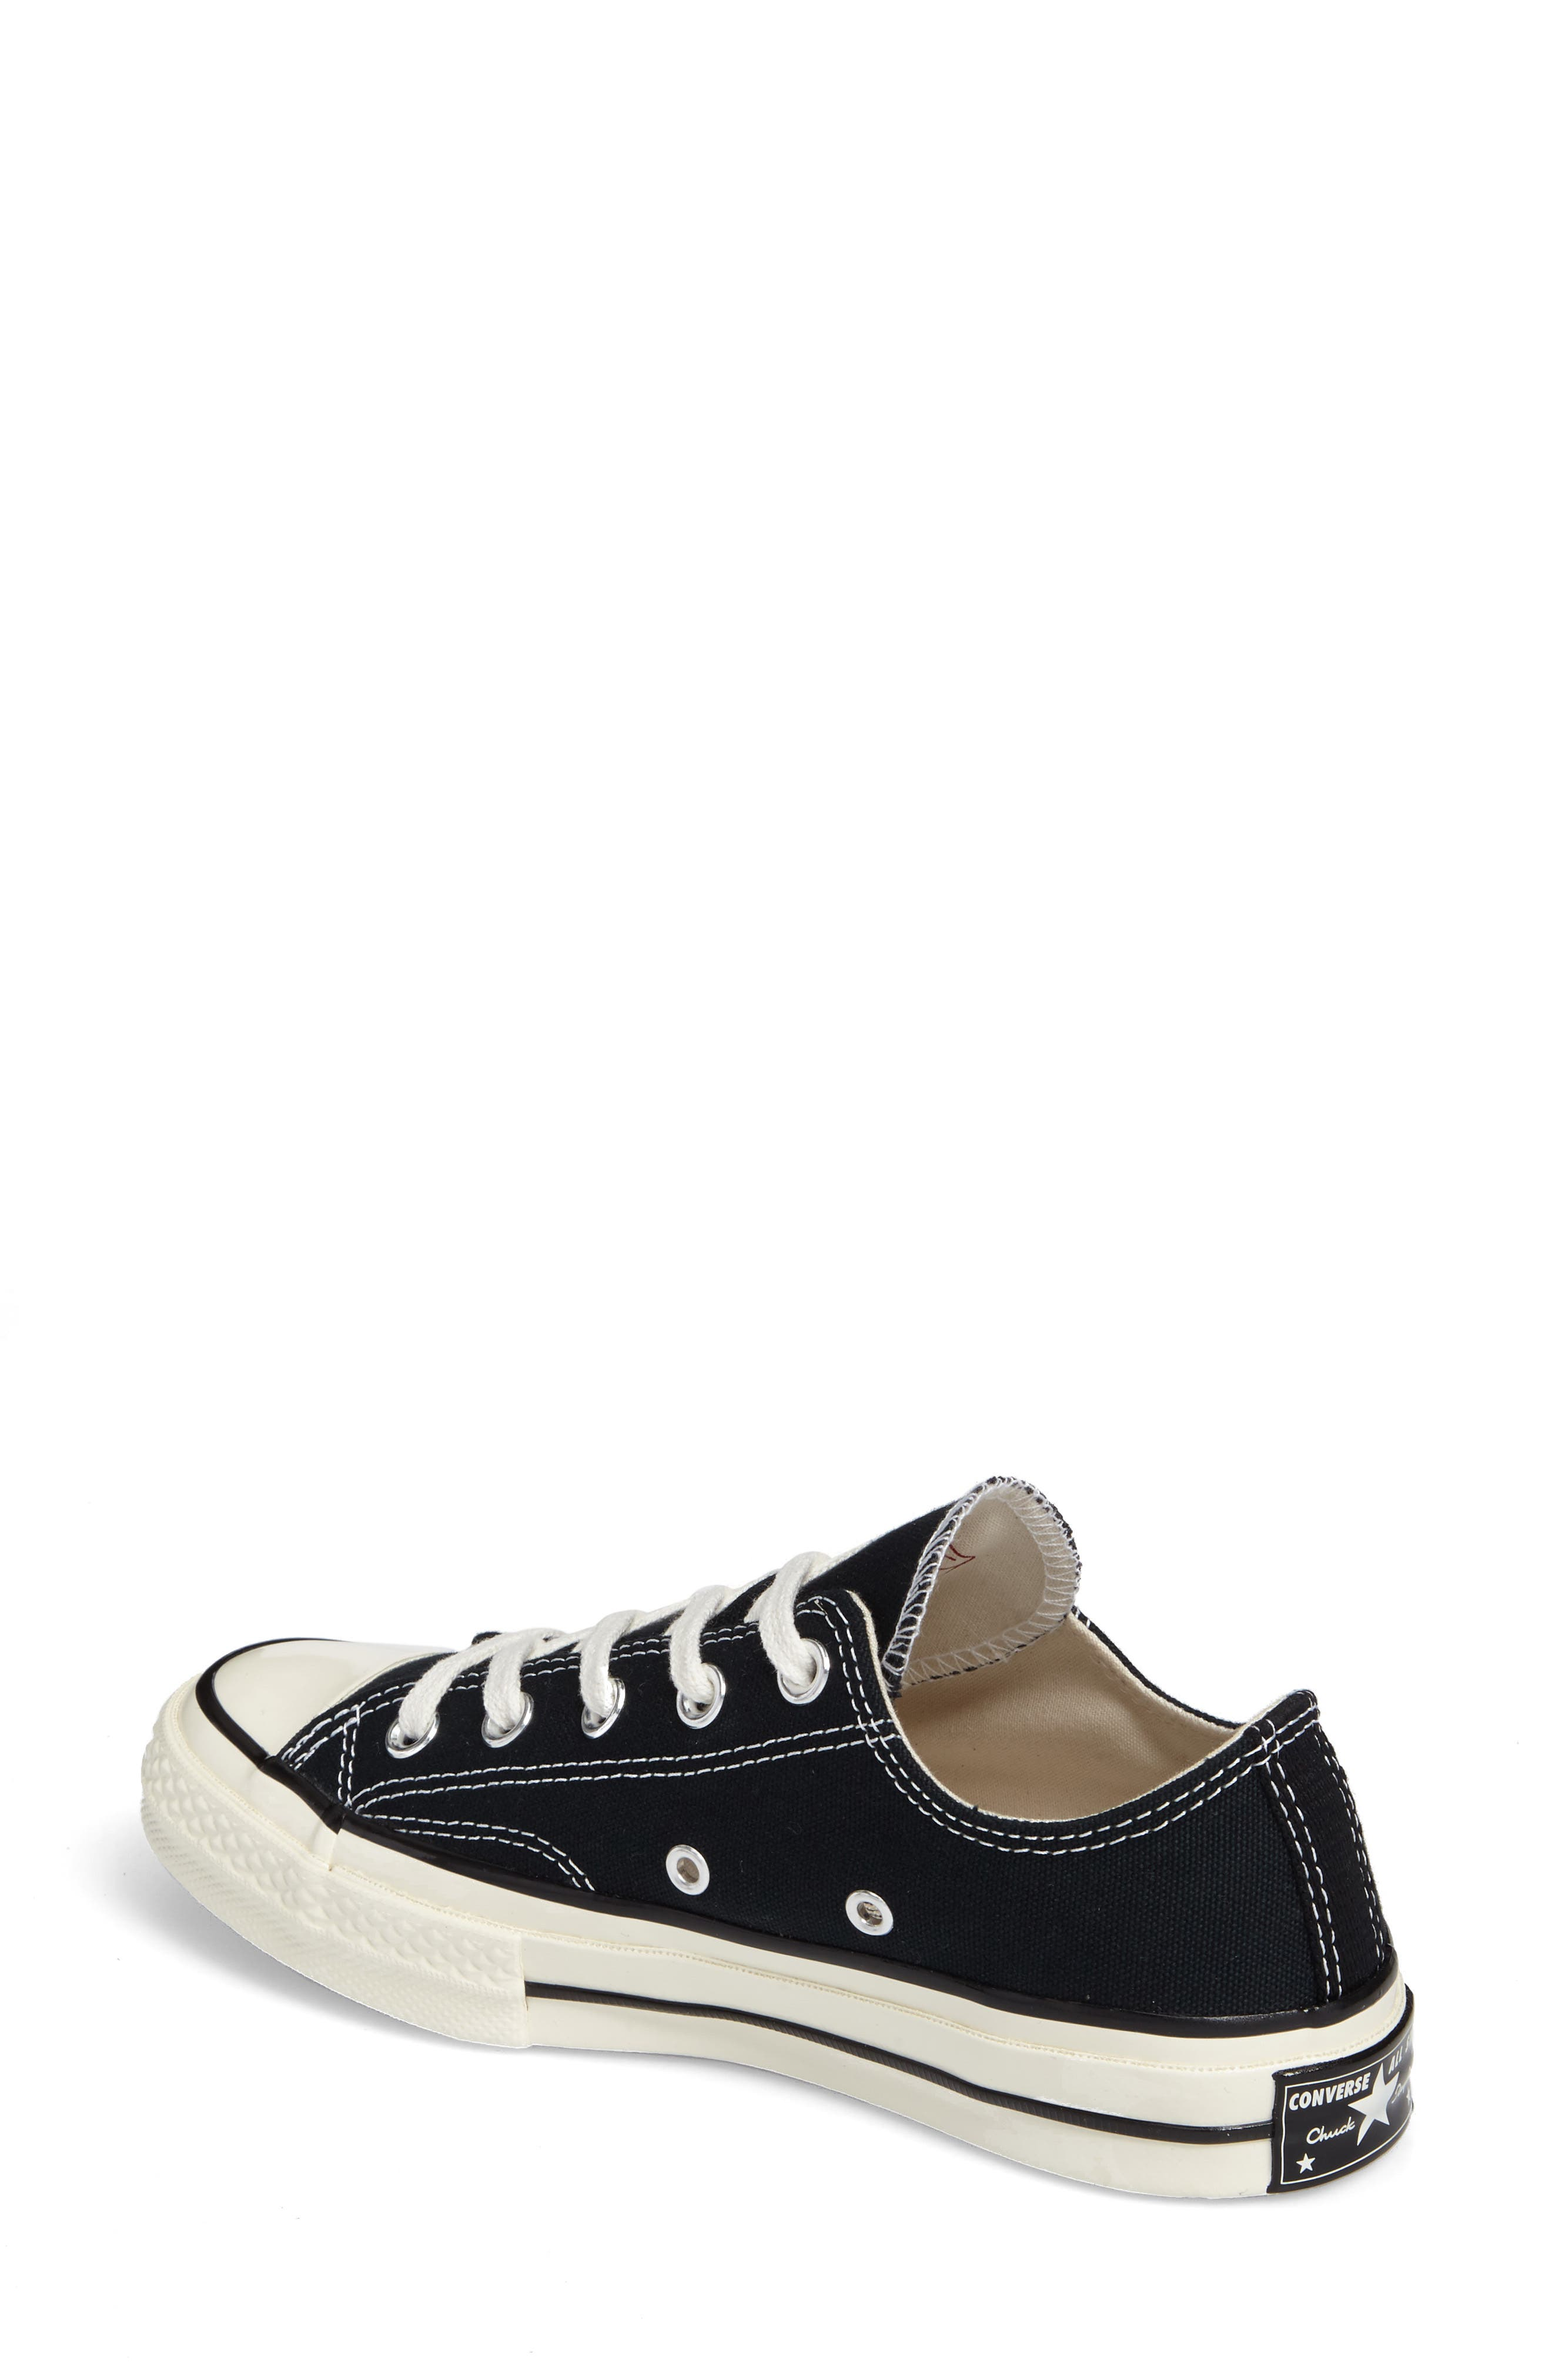 Chuck Taylor<sup>®</sup> All Star<sup>®</sup> Ox Low Top Sneaker,                             Alternate thumbnail 2, color,                             BLACK